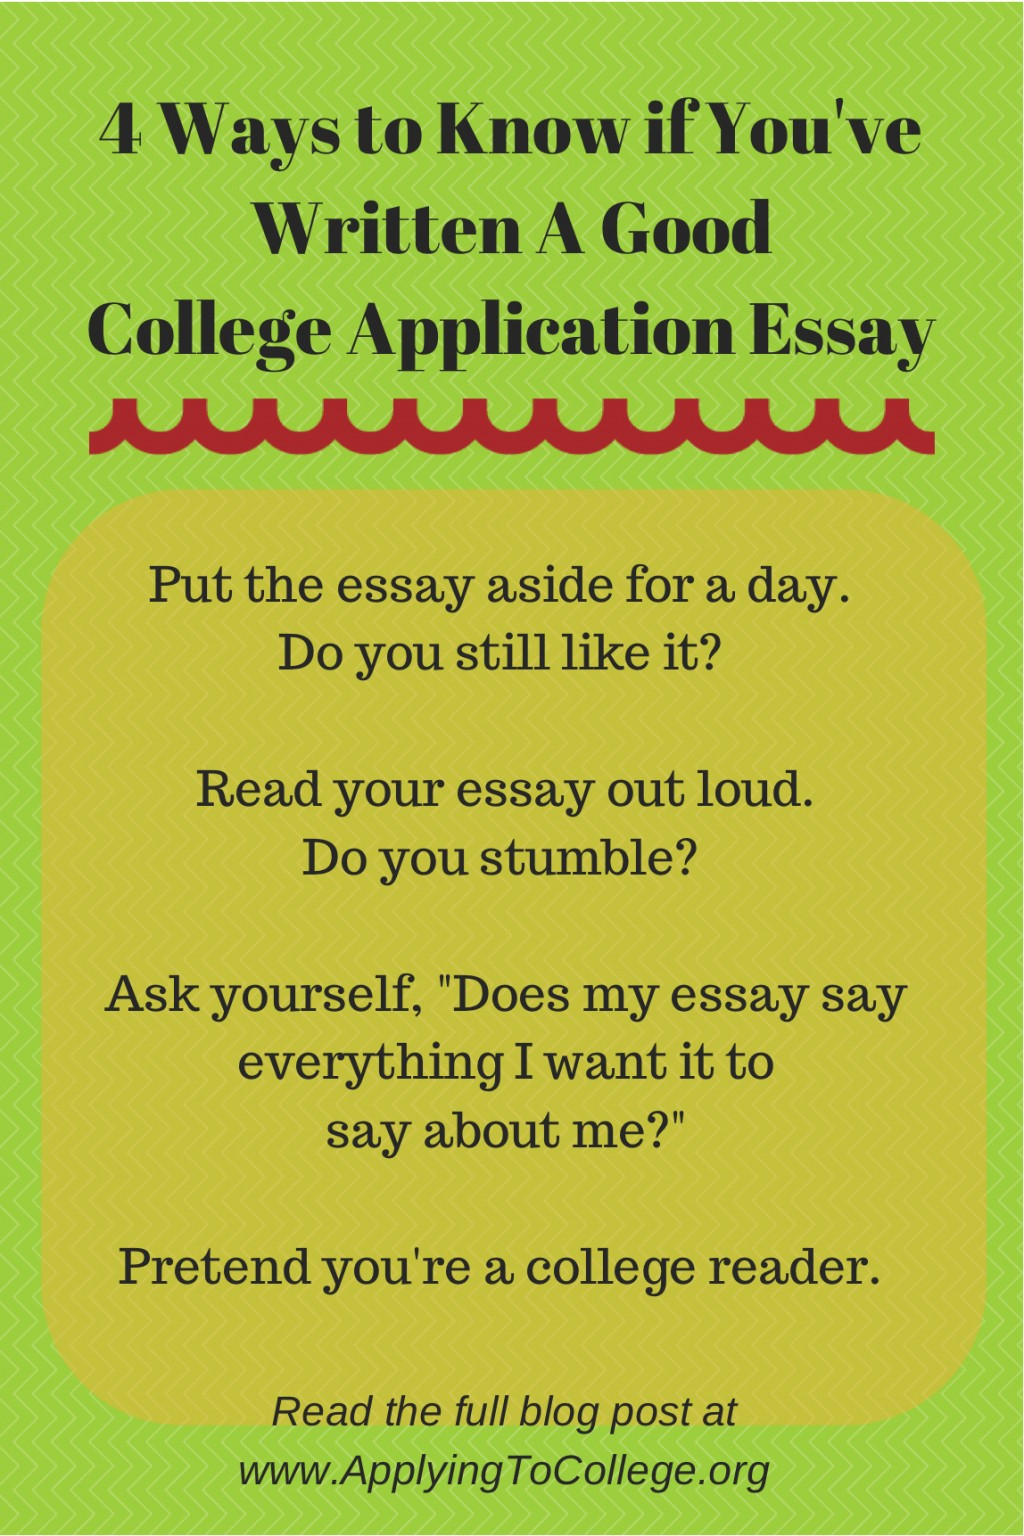 019 Tips To Write Good Essay Example 4ways Know If Youve Marvelous A Sat Descriptive Narrative Large